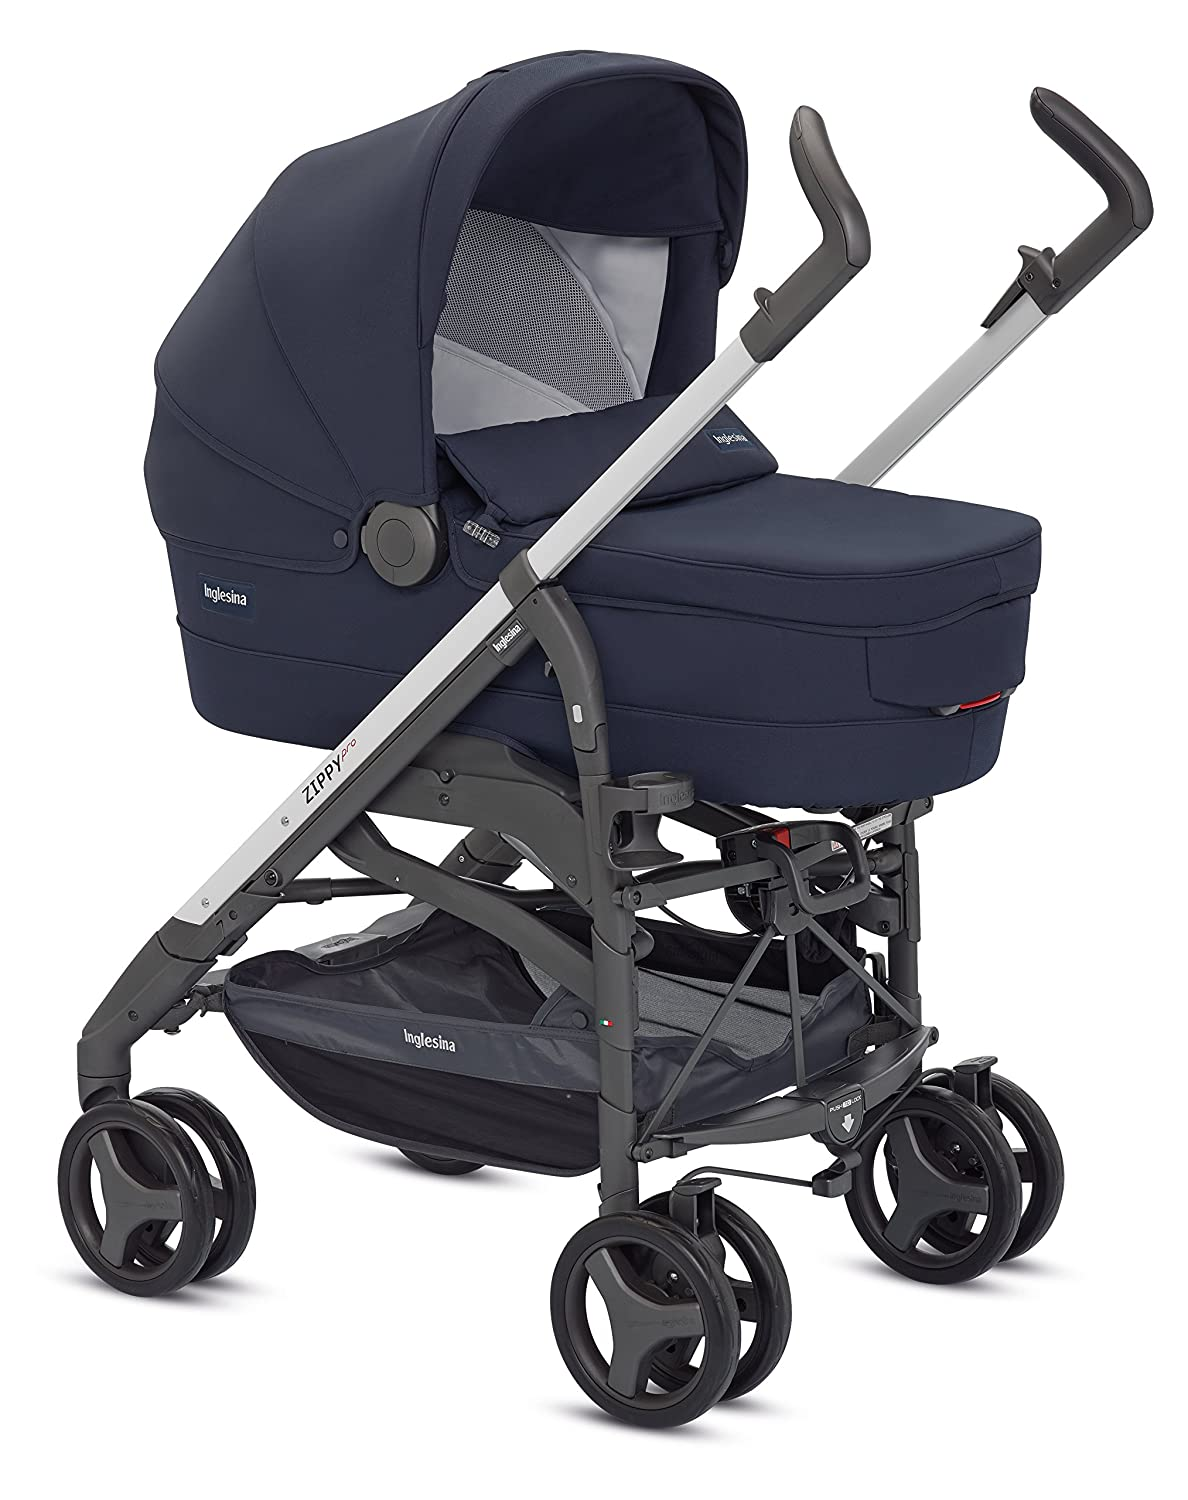 Silla de paseo Twin Swift Marina Inglesina AH84E0MAR color azul marino